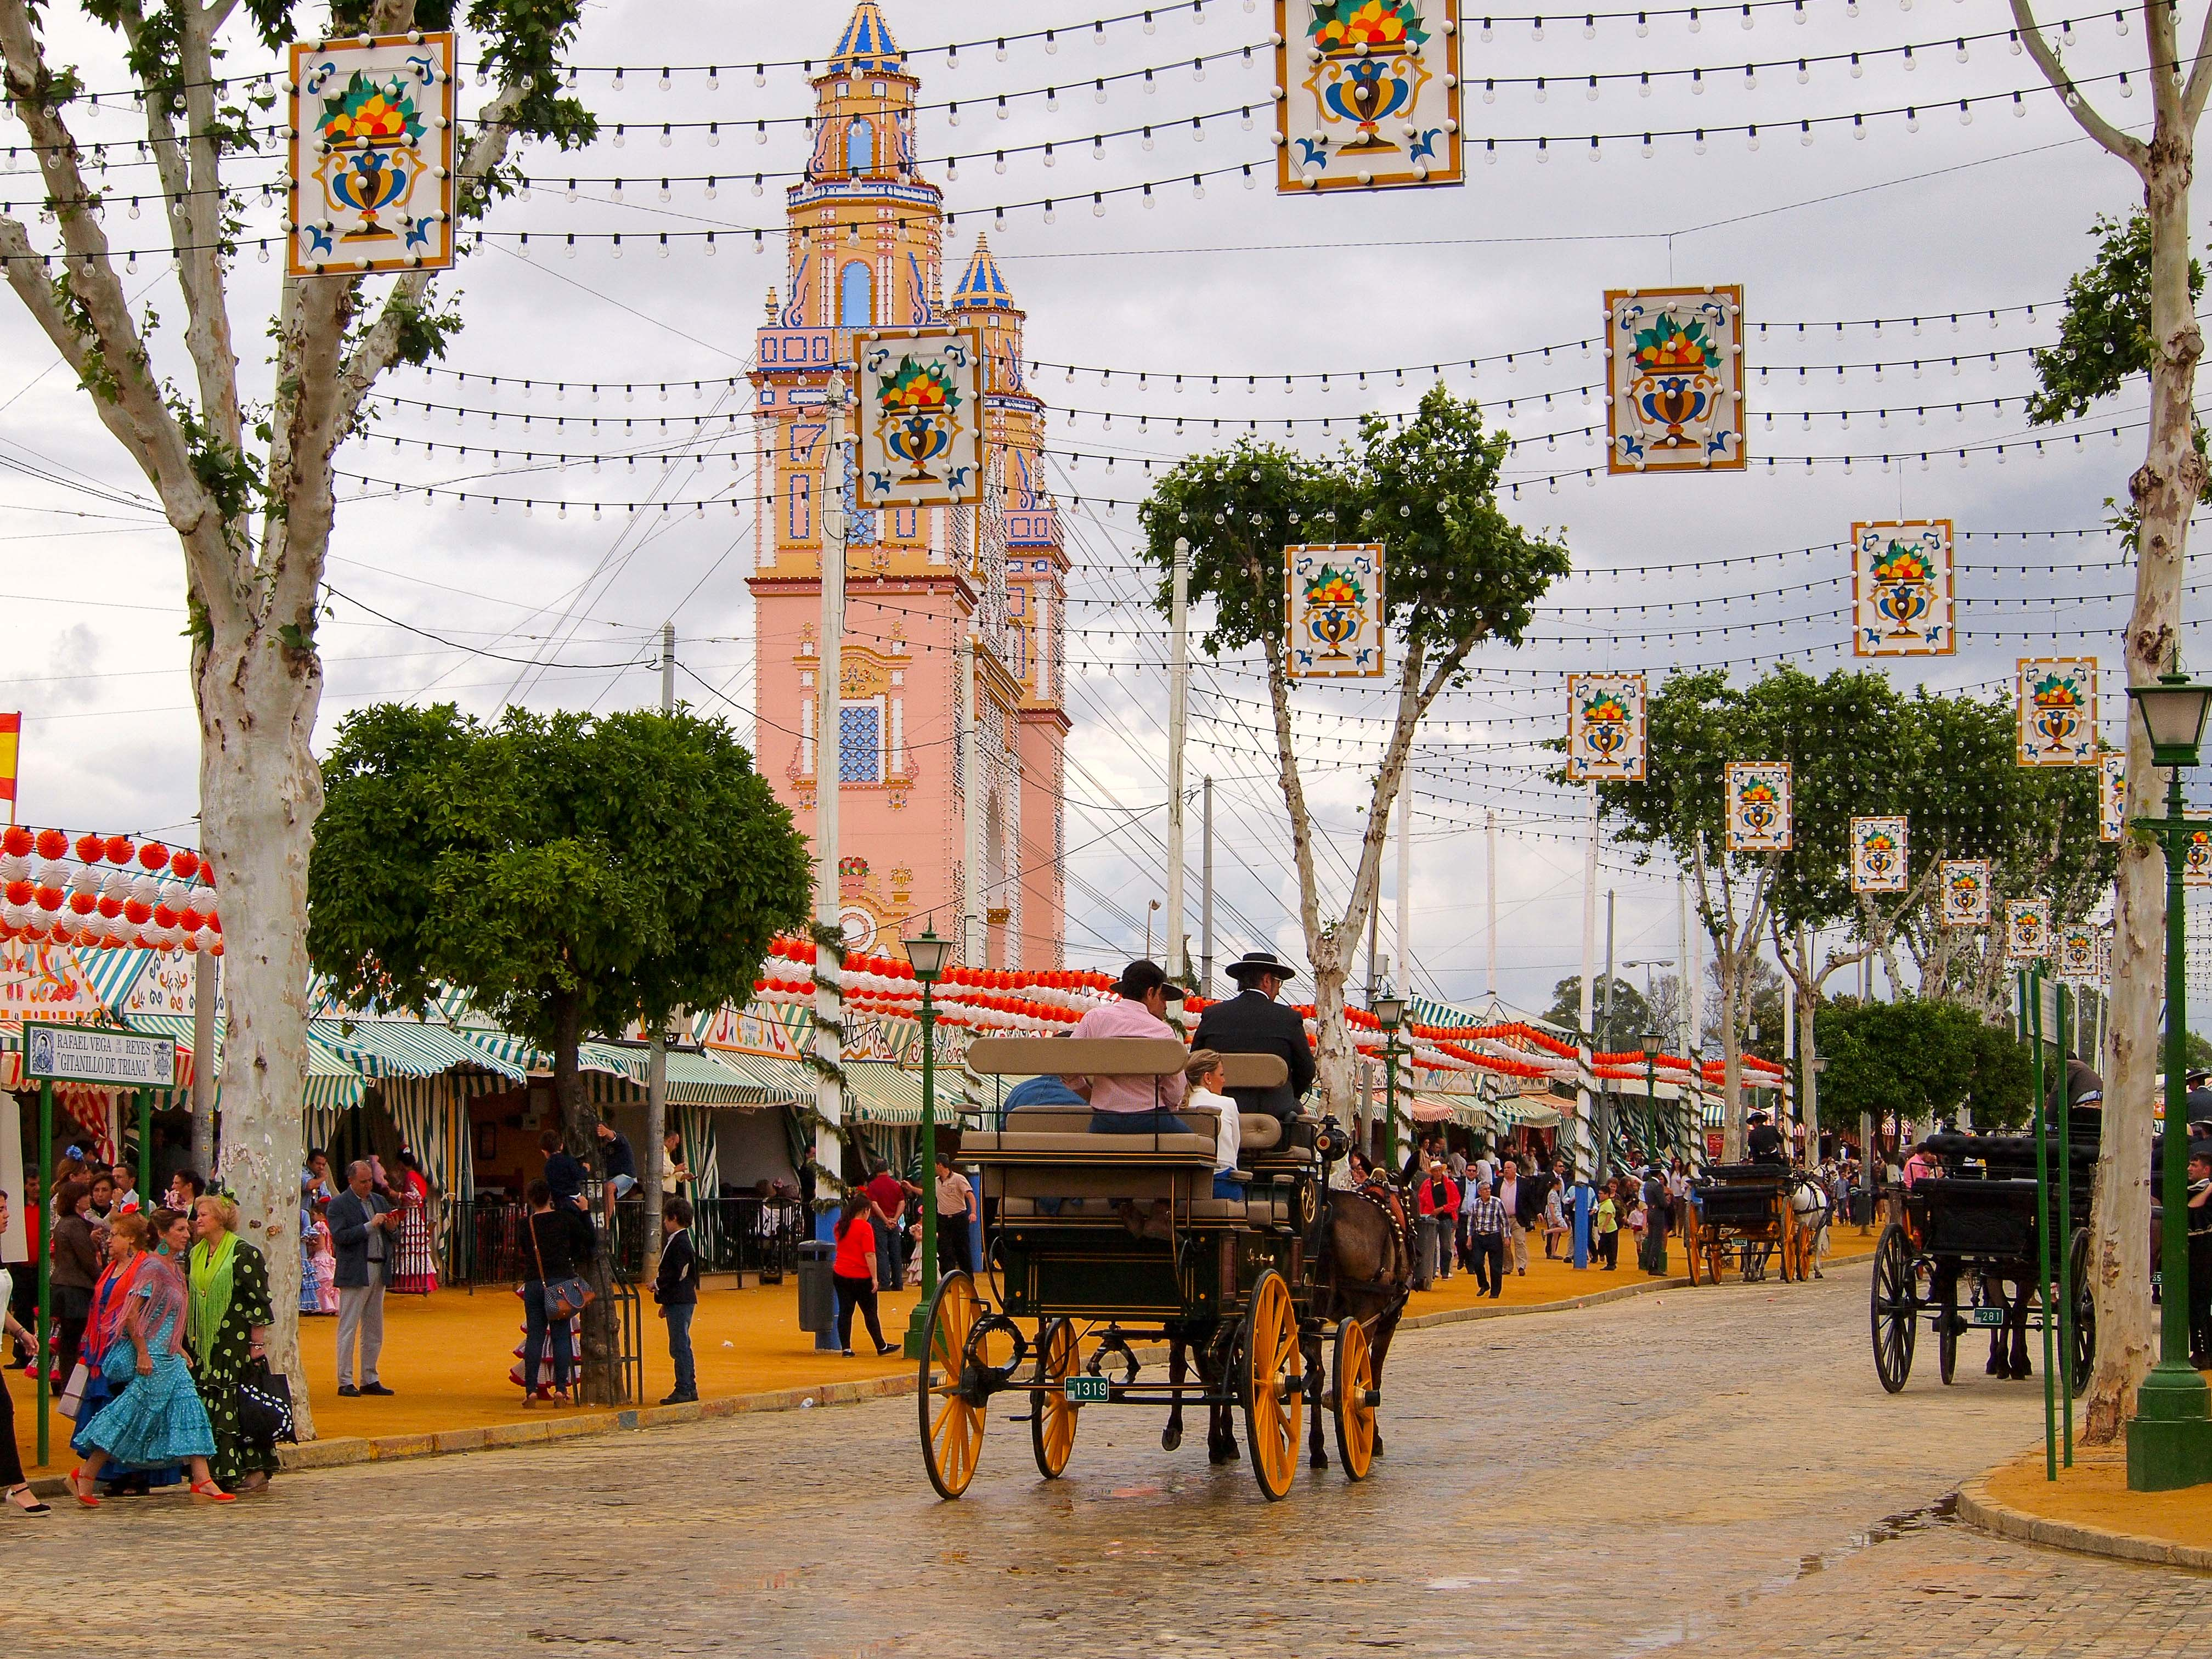 Tips for visiting the Seville Feria de Abril